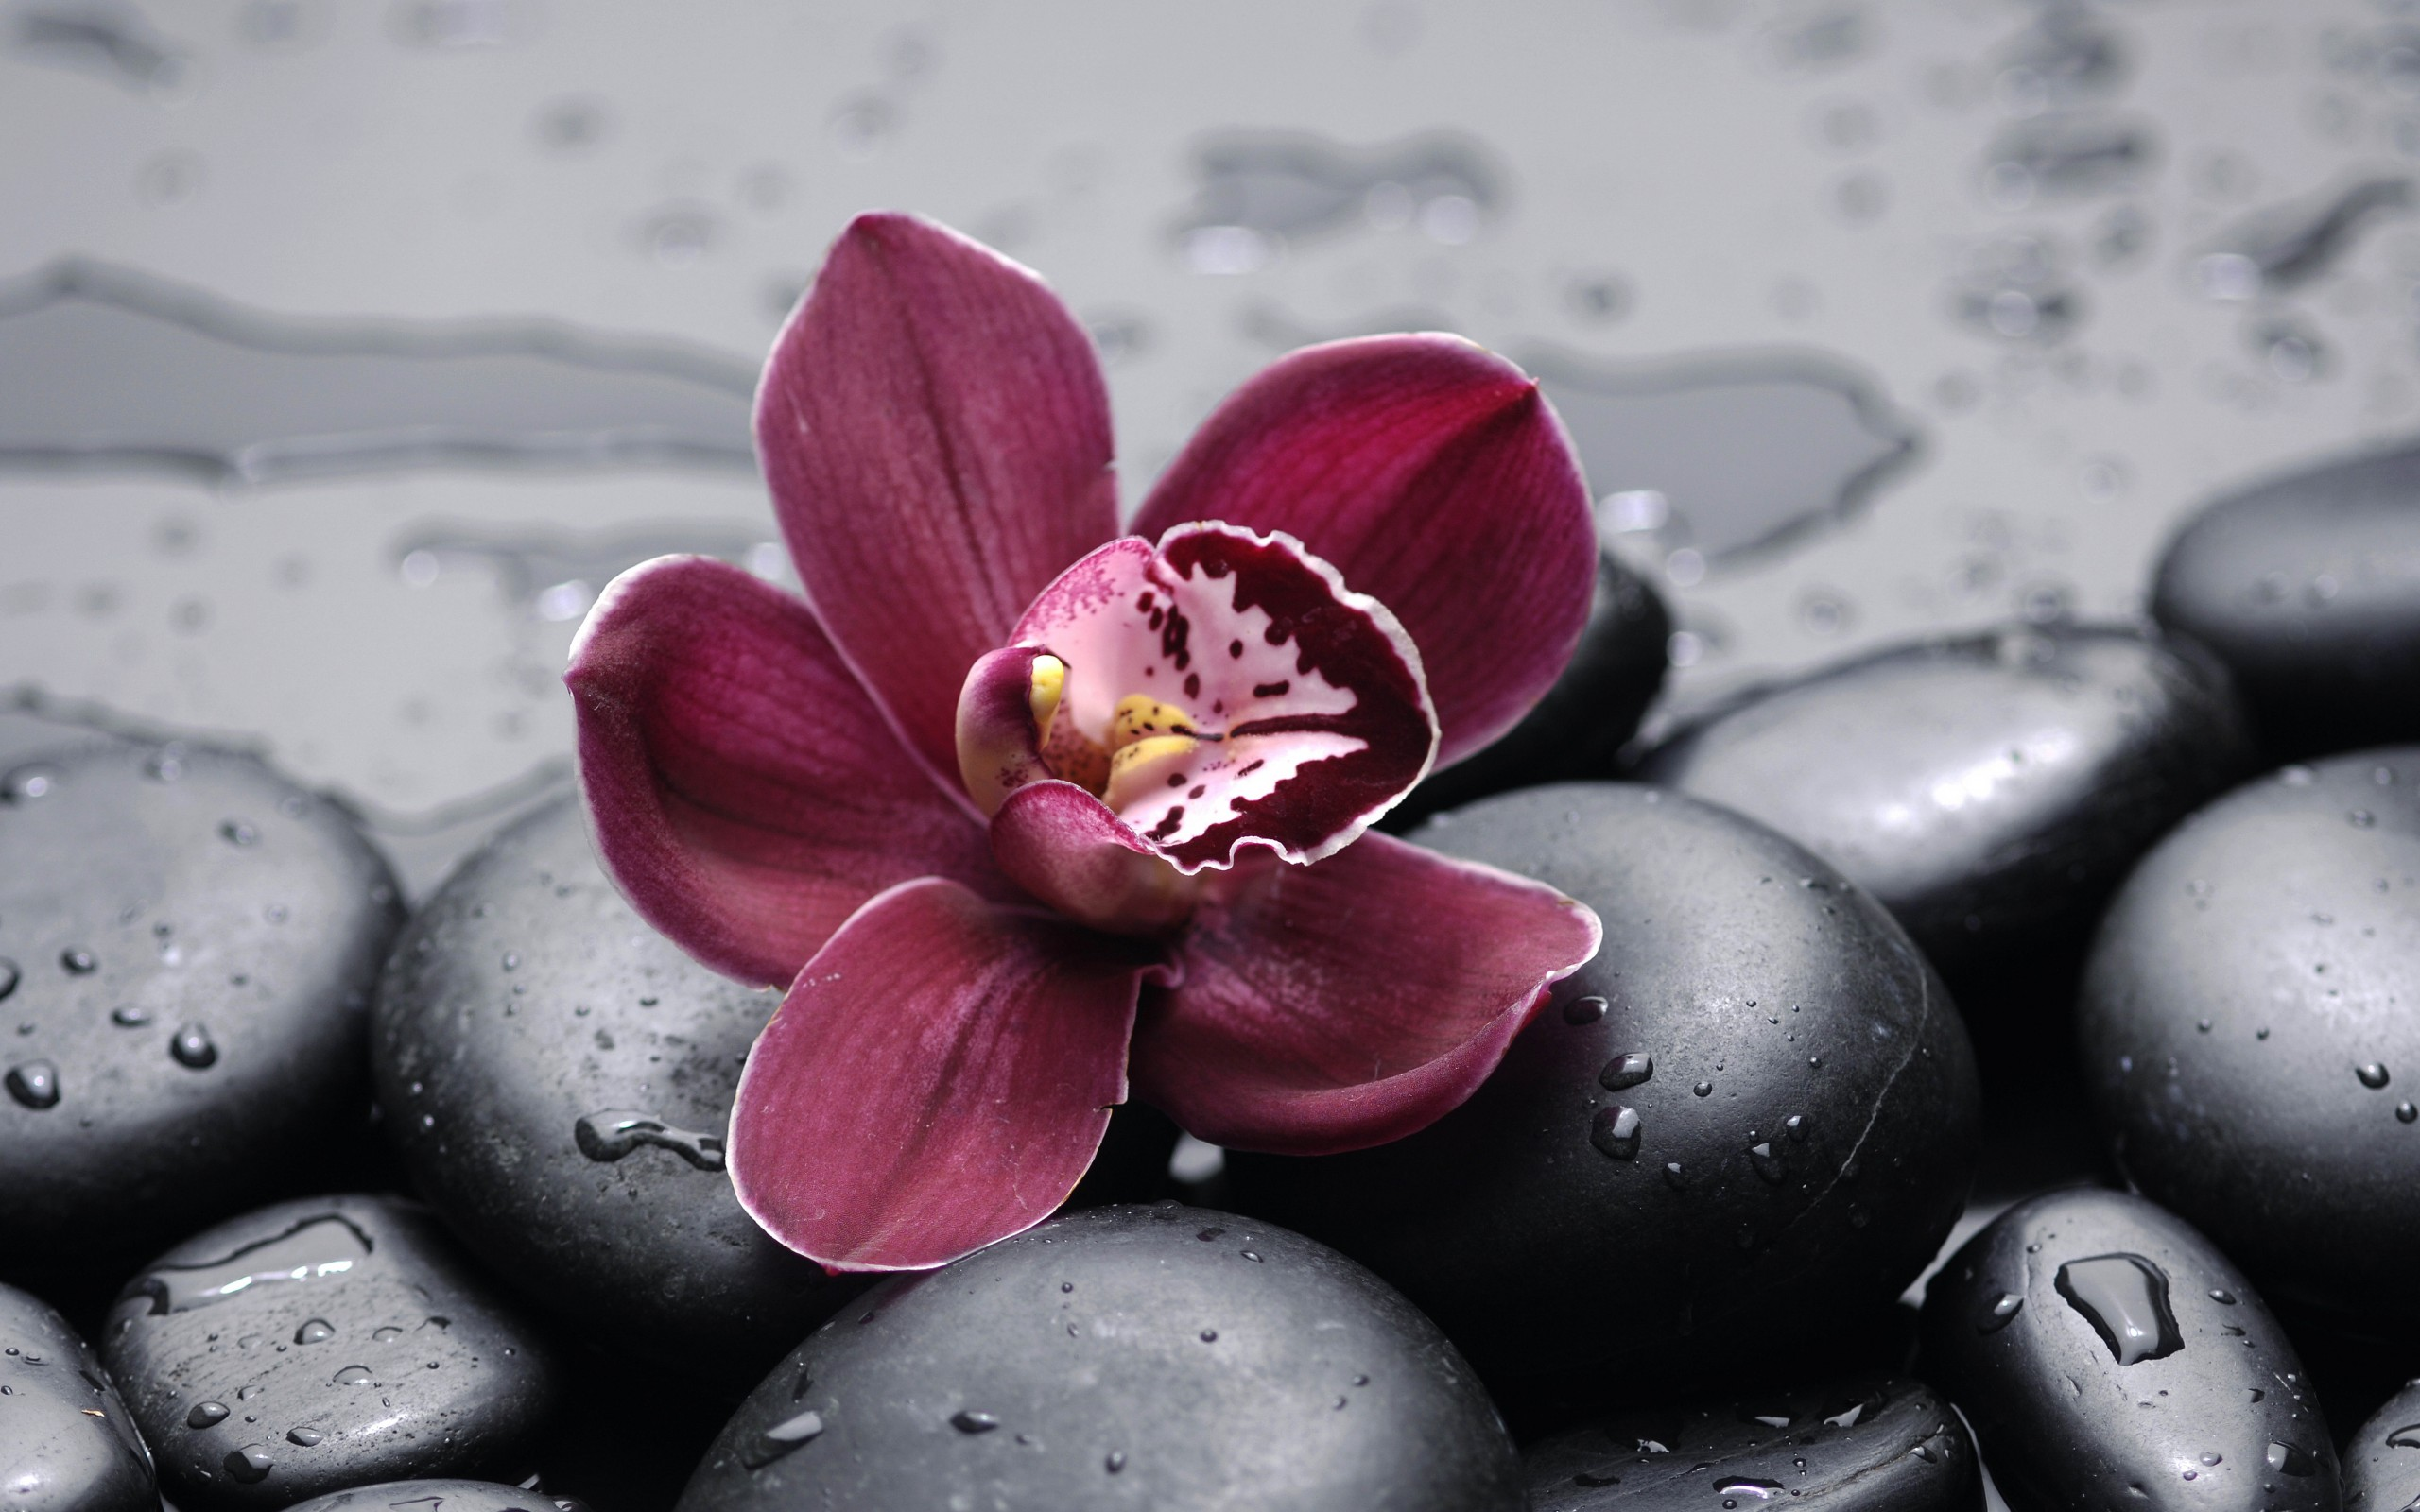 orchid wallpapers backgrounds images - photo #23